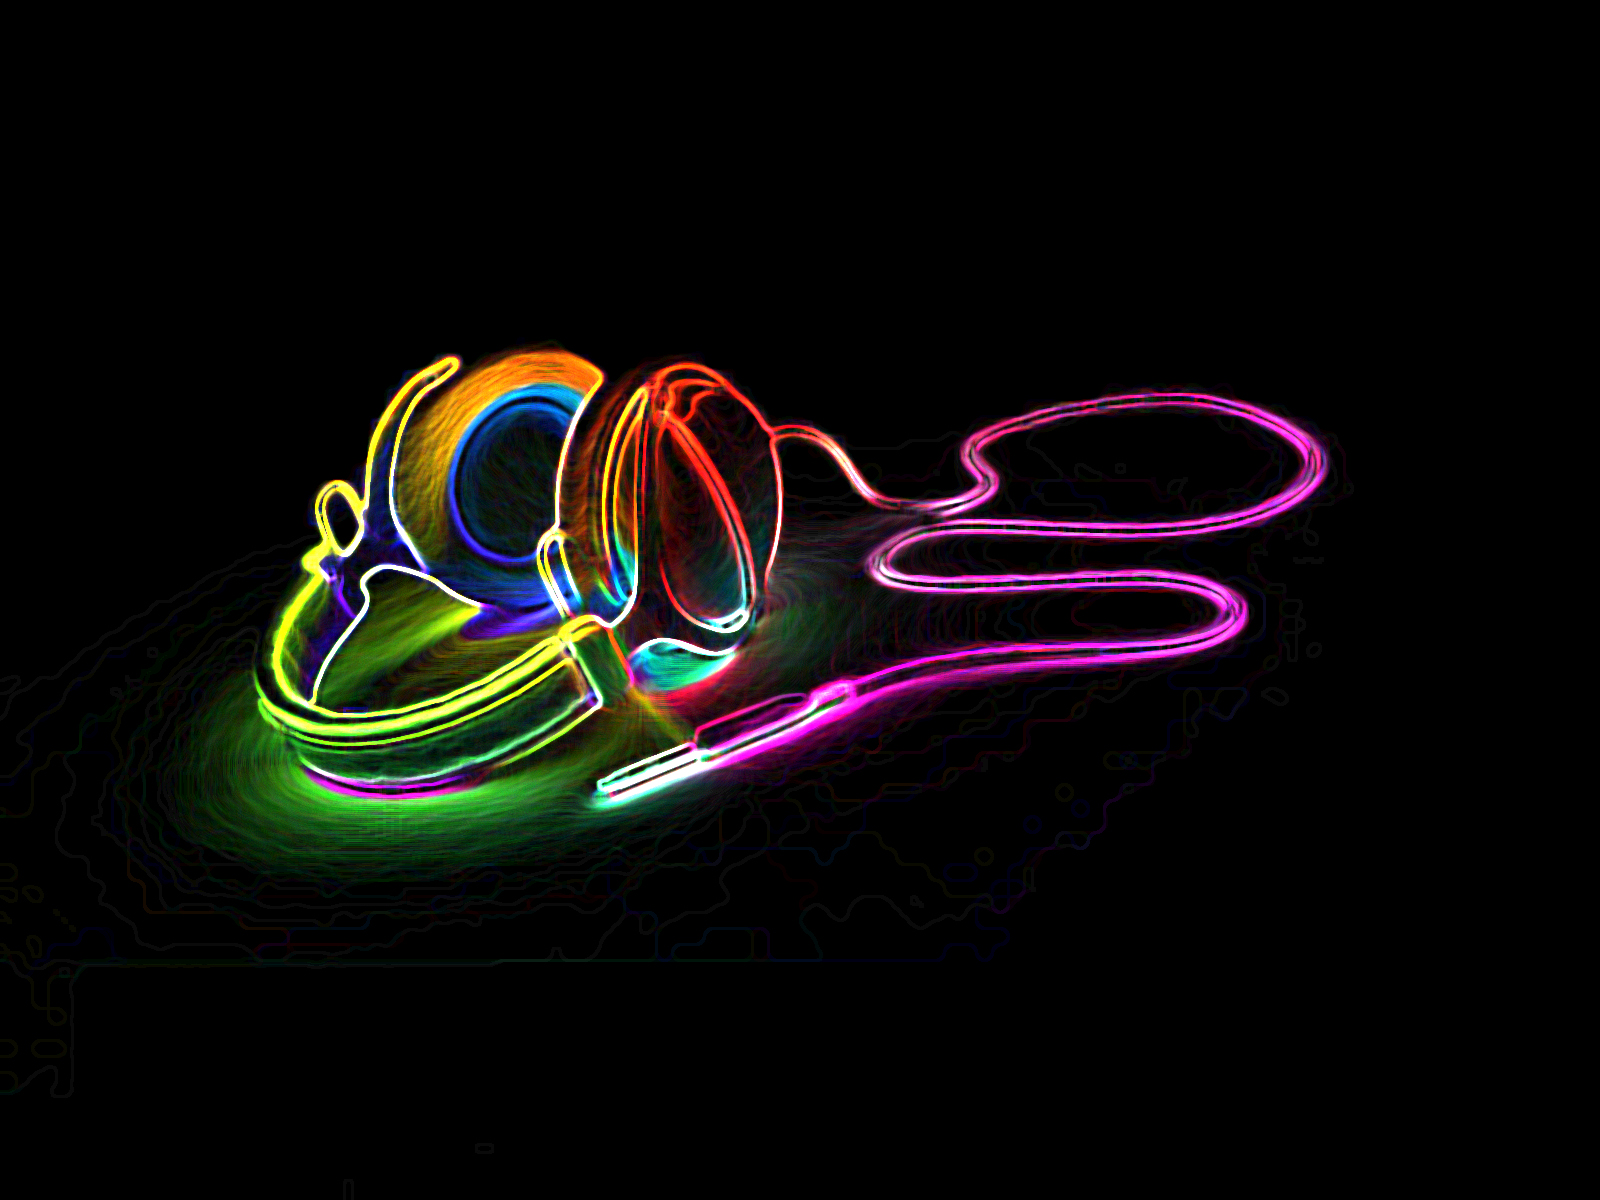 headphones hd wallpaper for desktop